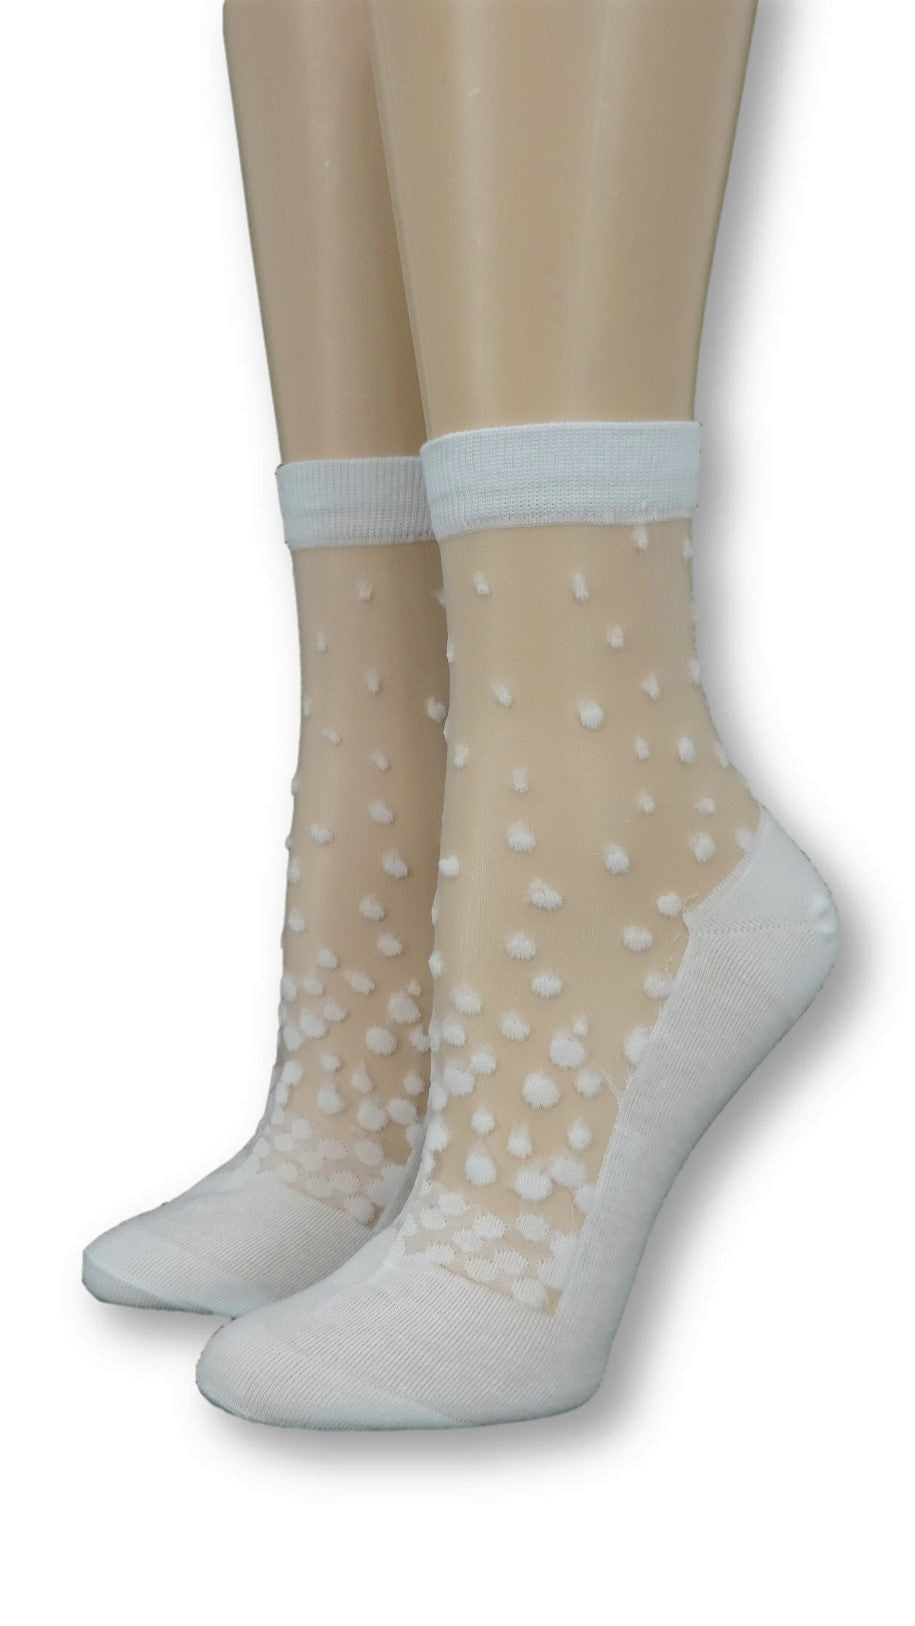 White Stippled Sheer Socks - Global Trendz Fashion®